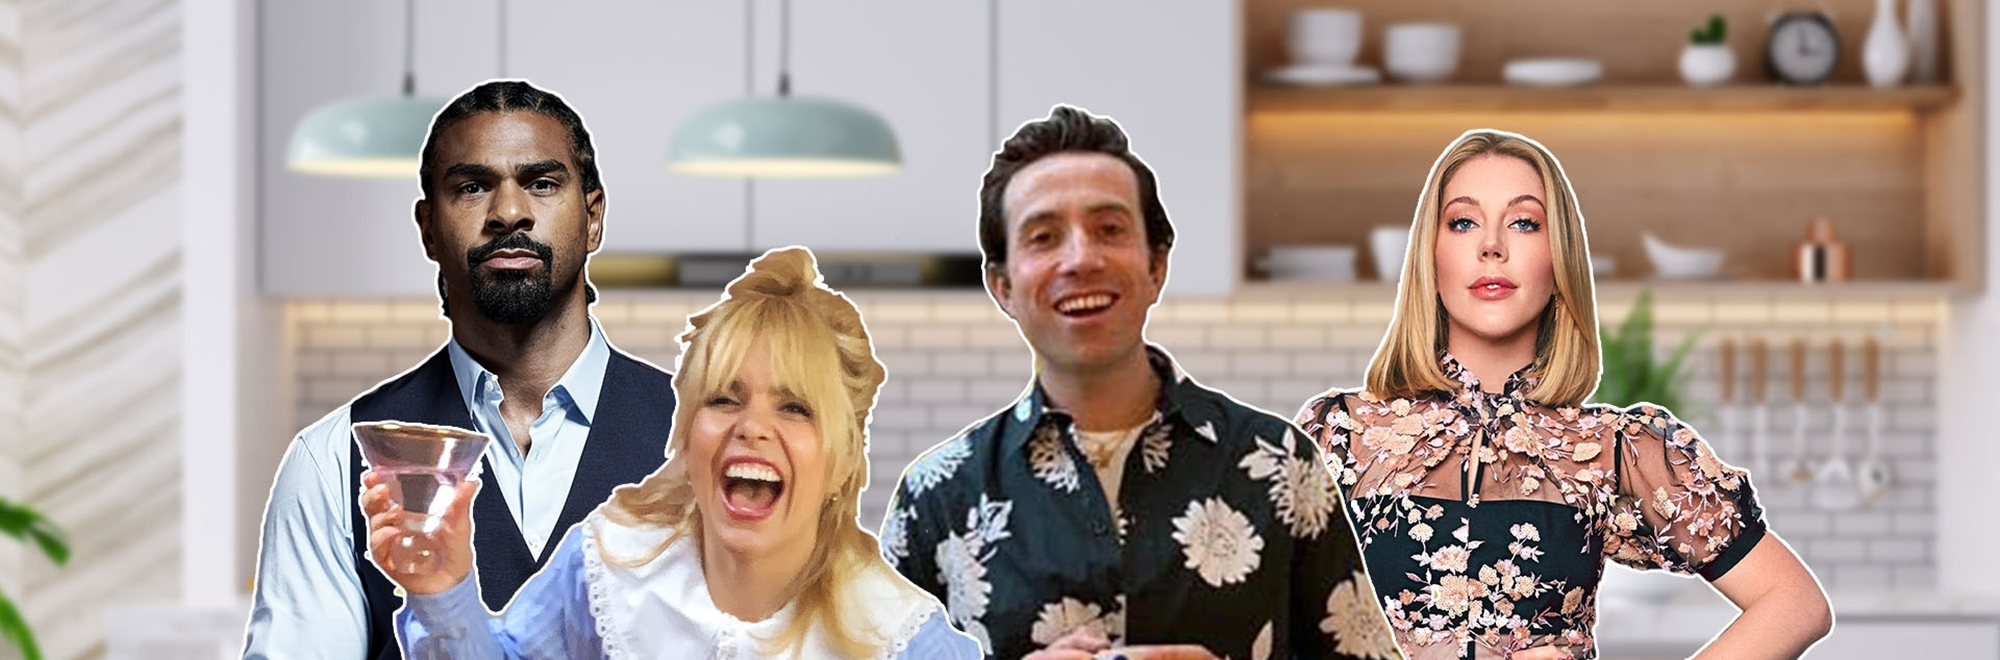 Gousto and Manifest cook up a dinner party for a million guests, hosted by Nick Grimshaw, Paloma Faith, David Haye and Katherine Ryan